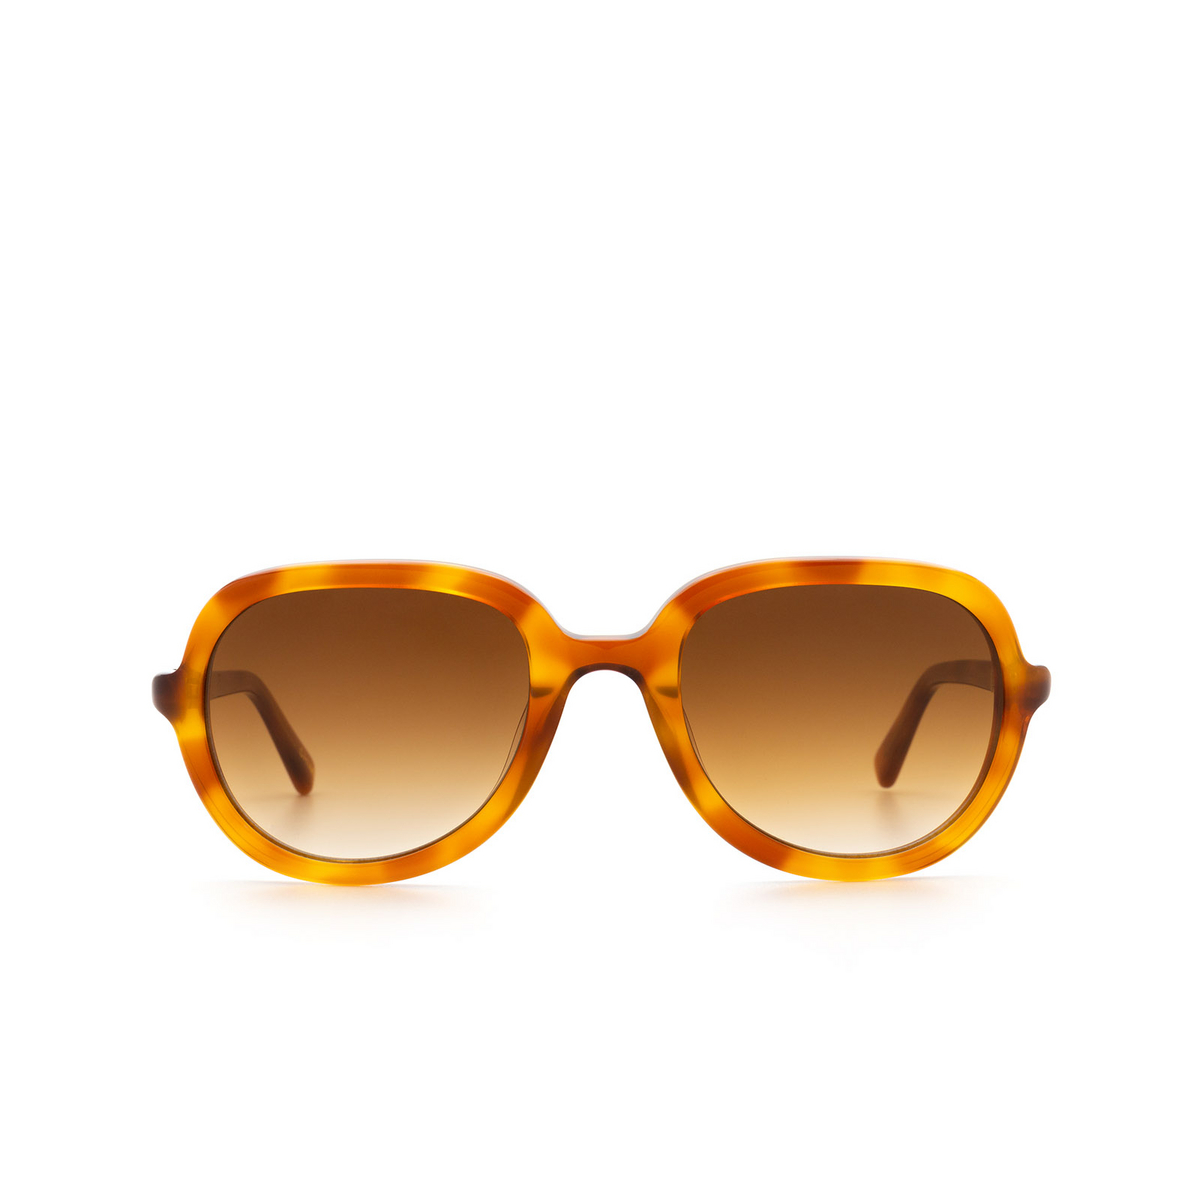 Chimi® Square Sunglasses: Voyage Aviator color Amber - front view.